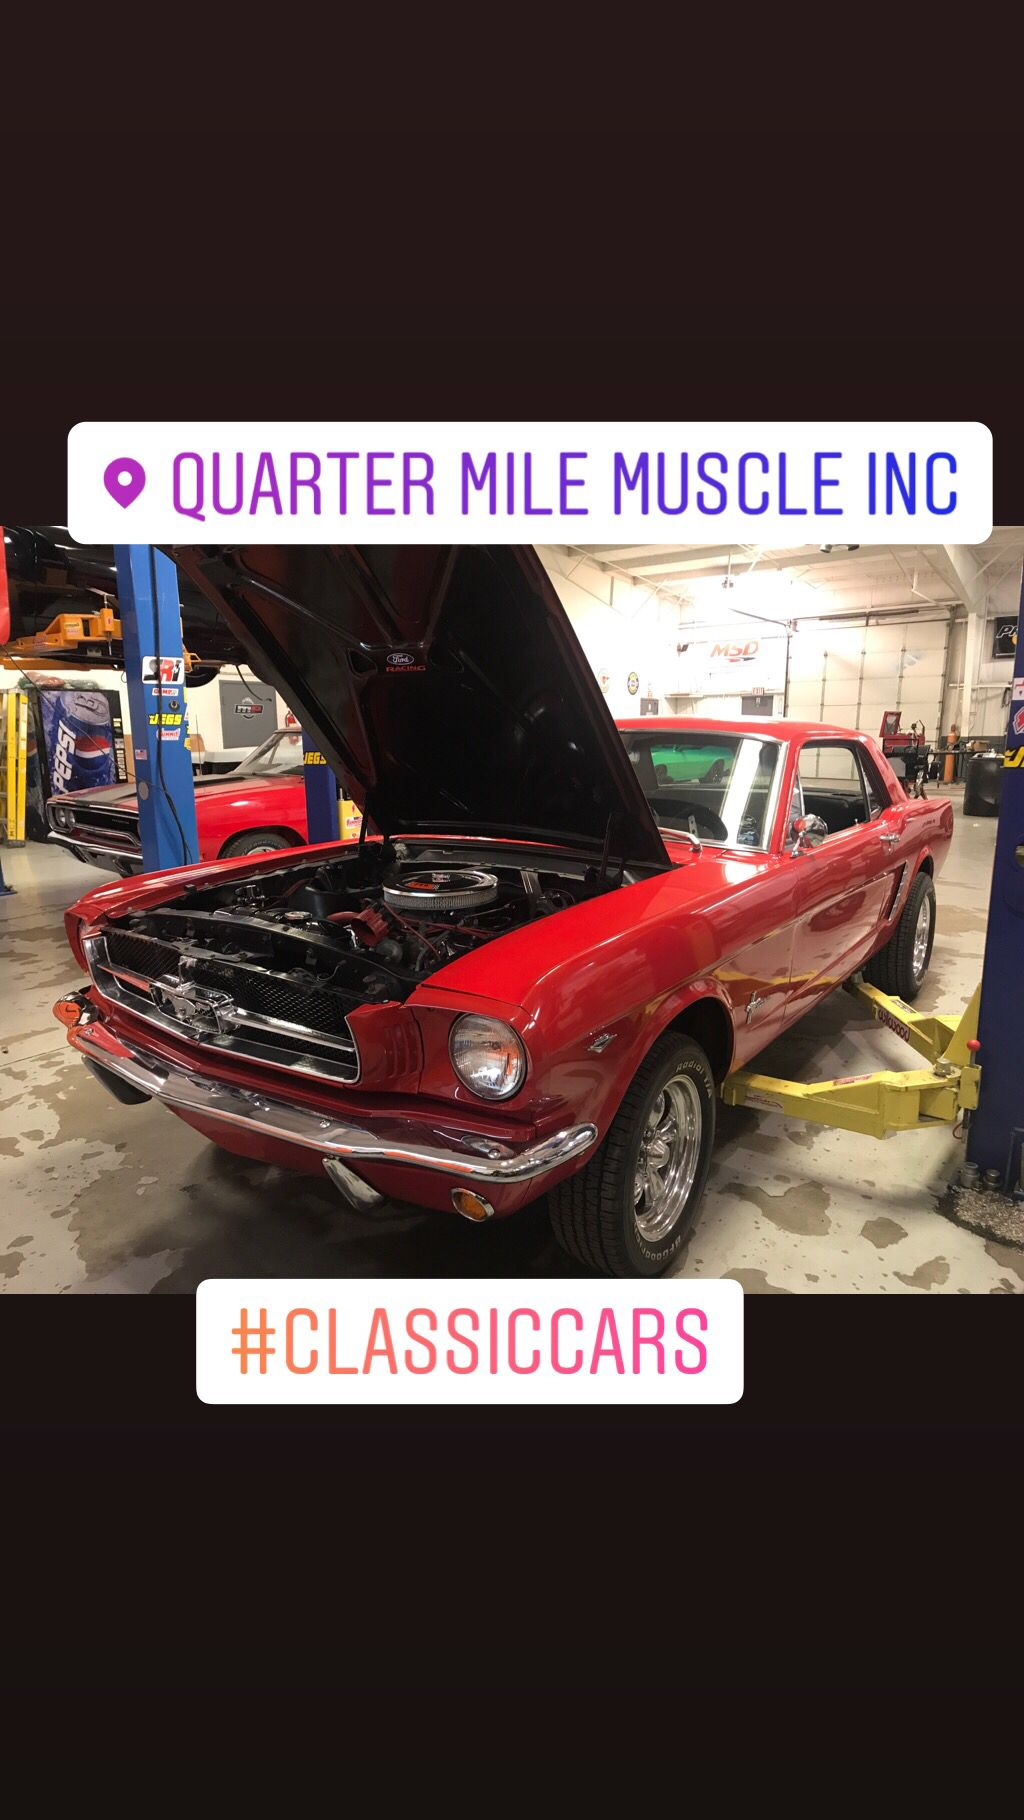 Here Is A 1964 Ford Mustang At Quarter Mile Muscle Getting Some Upgrades To Make This Car More Enjoyable T Classic Car Restoration Classic Mustang Muscle